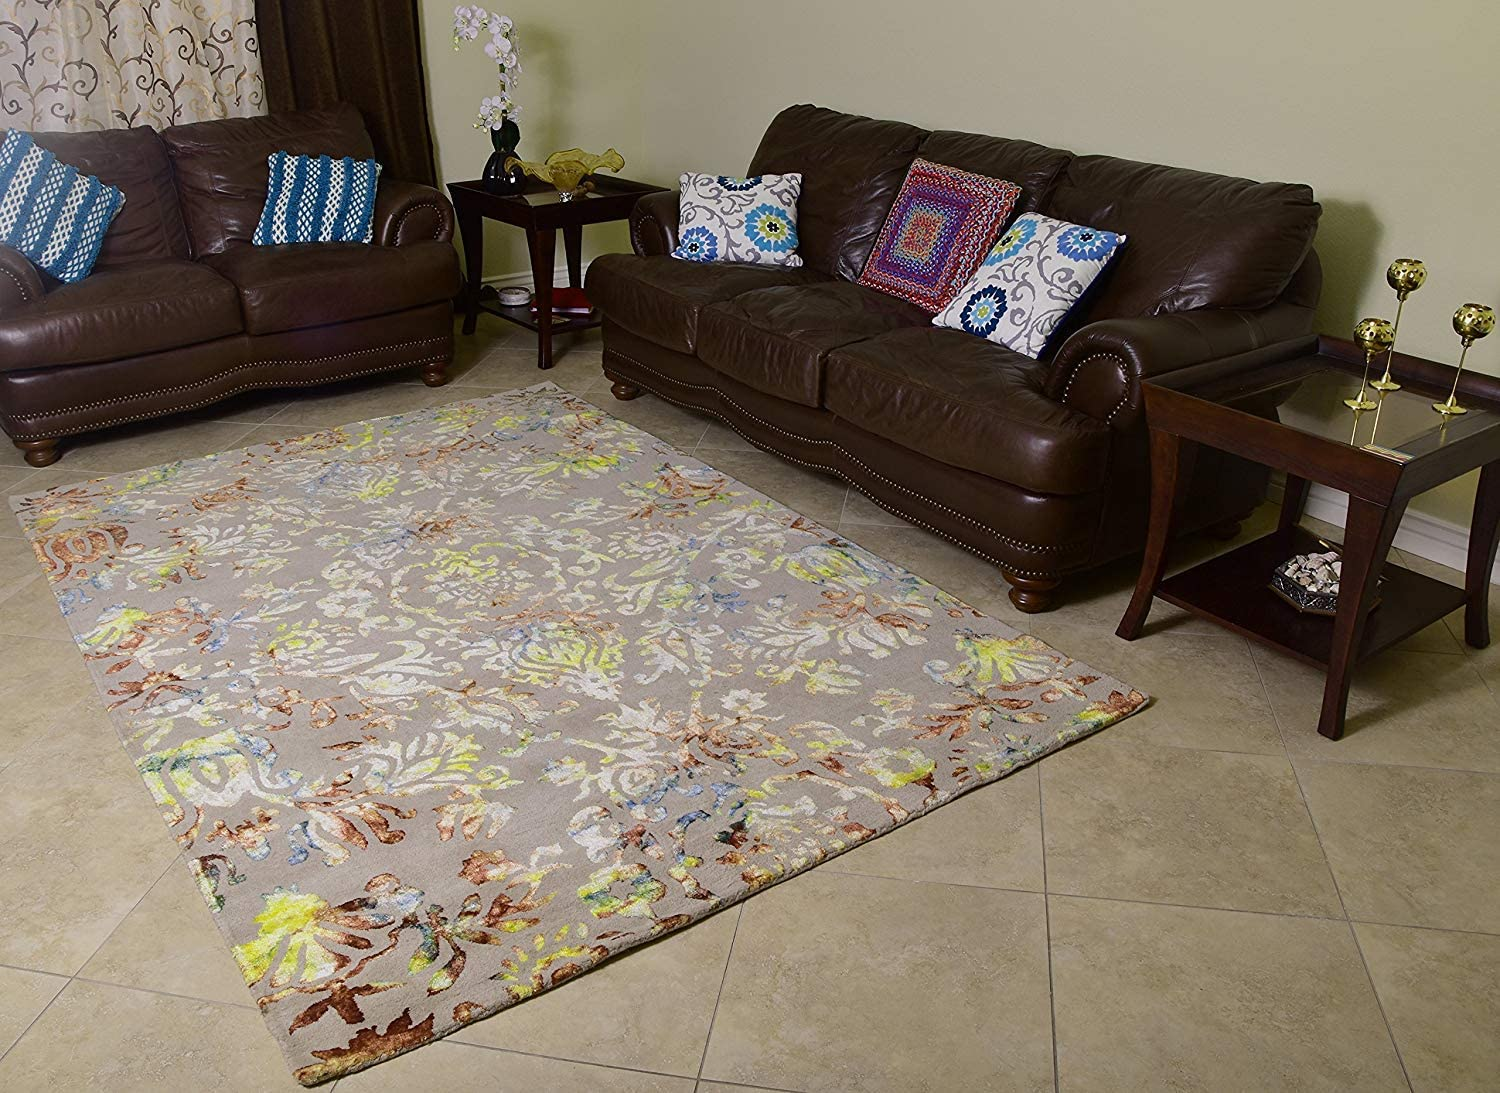 Amazon Com Mystiquedecors Wool Viscose Area Rug 6x9 Hand Tufted Beige Base With Multi Color Floral Design Rich Contemporary Style Carpet Living Room Bedroom Dining Rugs Home Kitchen